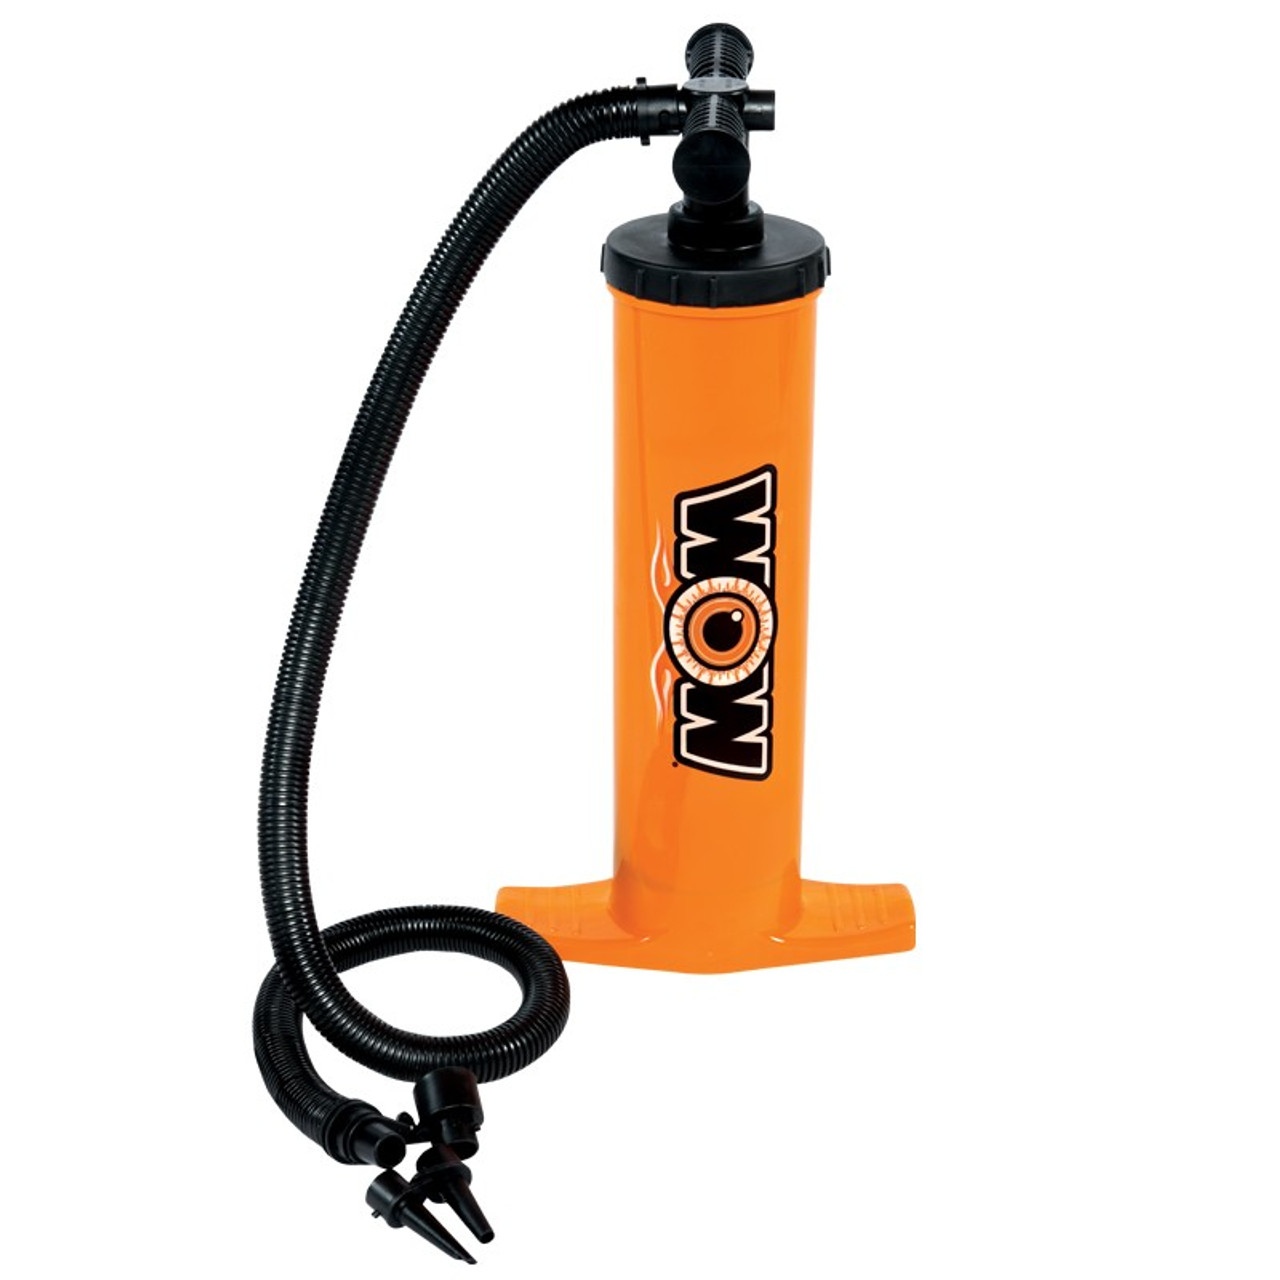 WOW Double Action Hand Pump